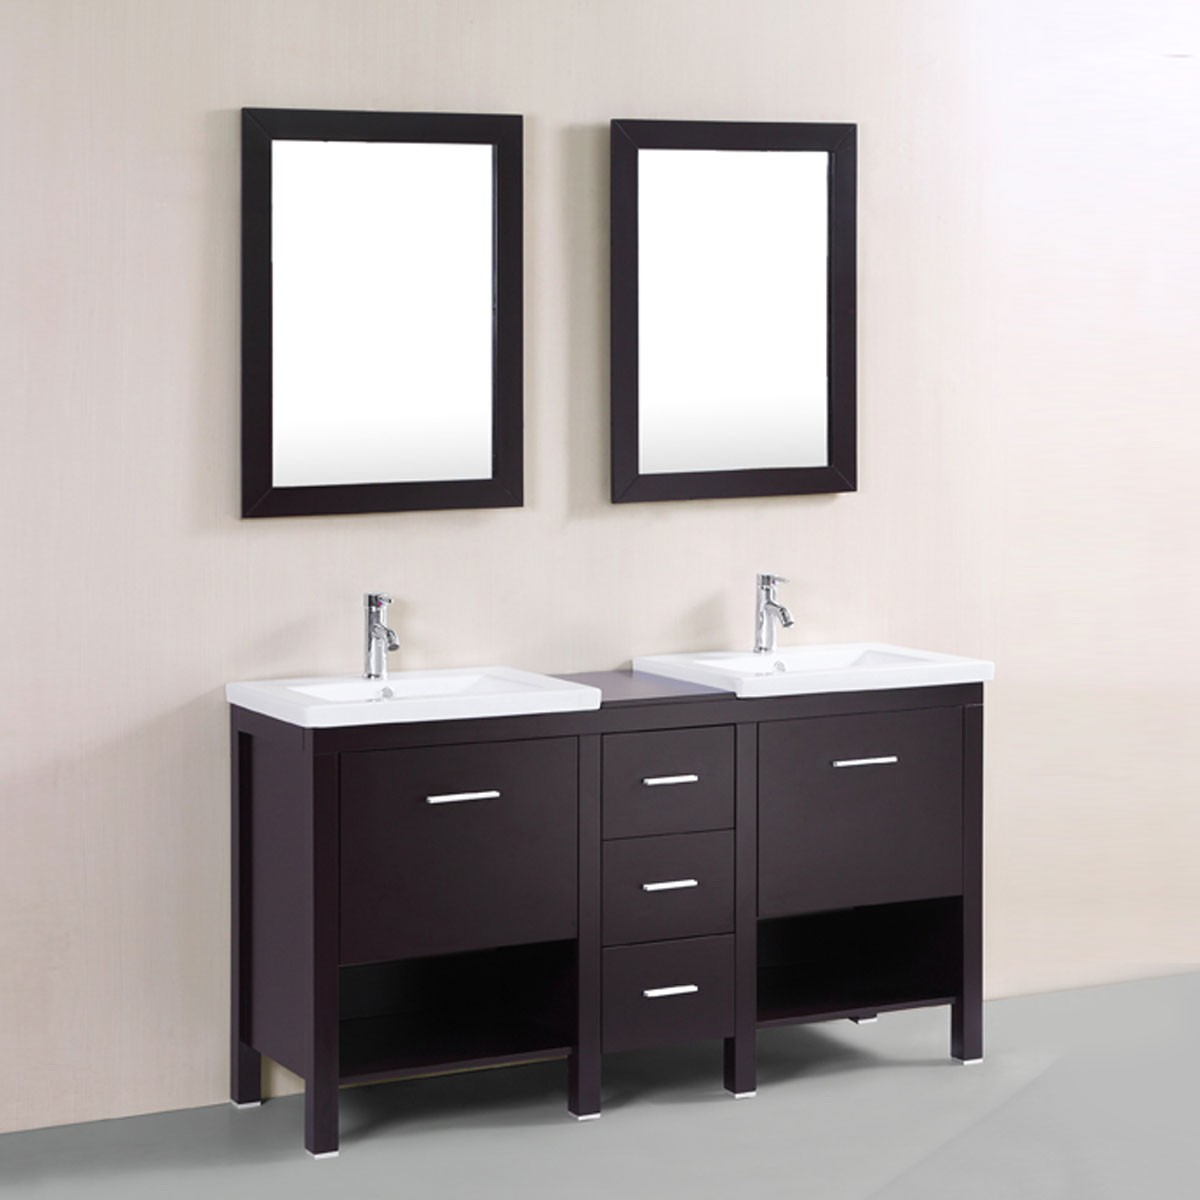 60 In. Freestanding Bathroom Vanity Set with Double Mirrors and ...